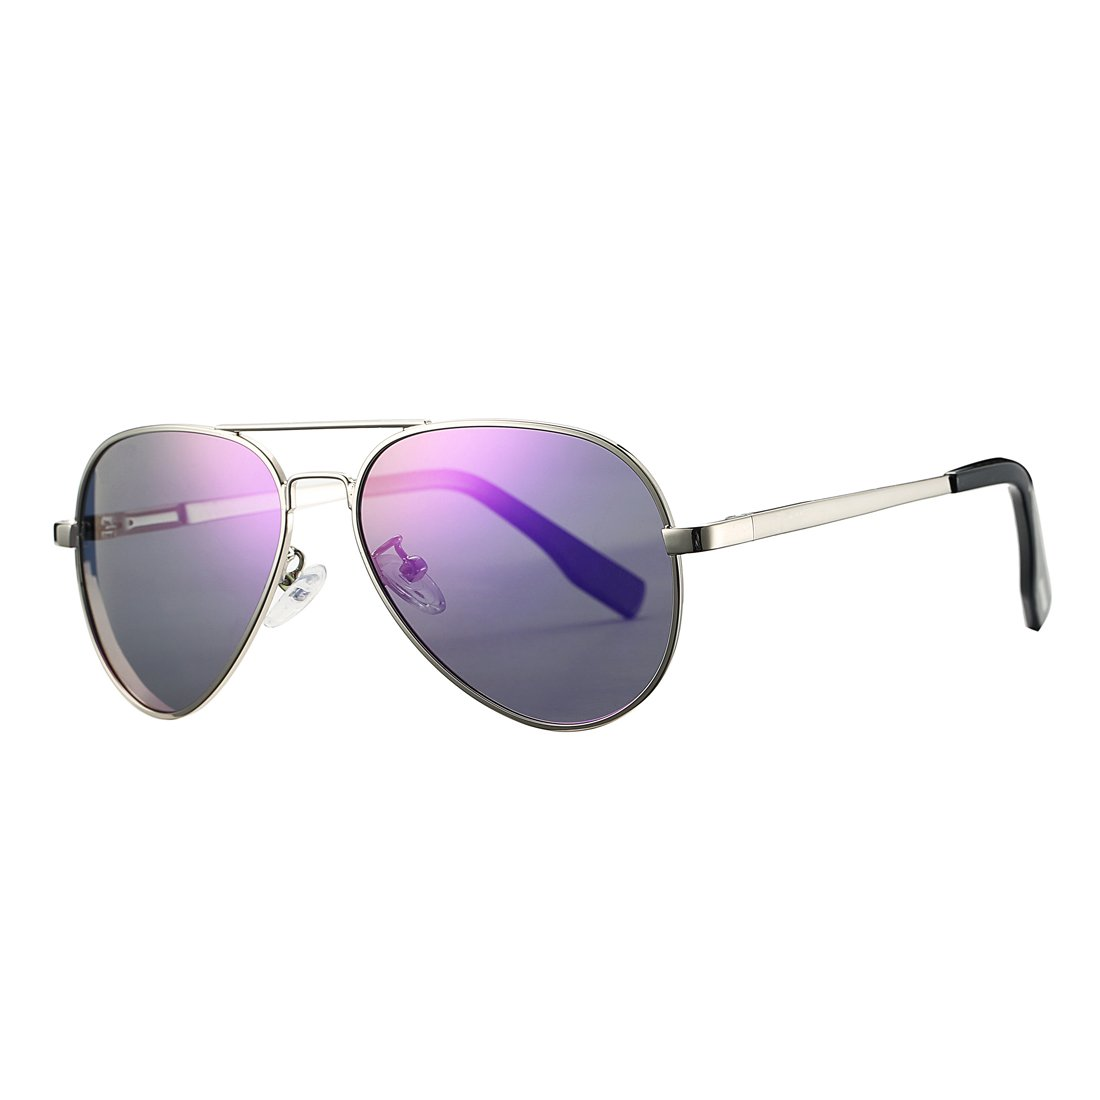 Polarized Aviator Sunglasses for Juniors Small Face Women Men Vintage UV400 Protection Shades(Silver Frame/Purple Mirrored Lens)